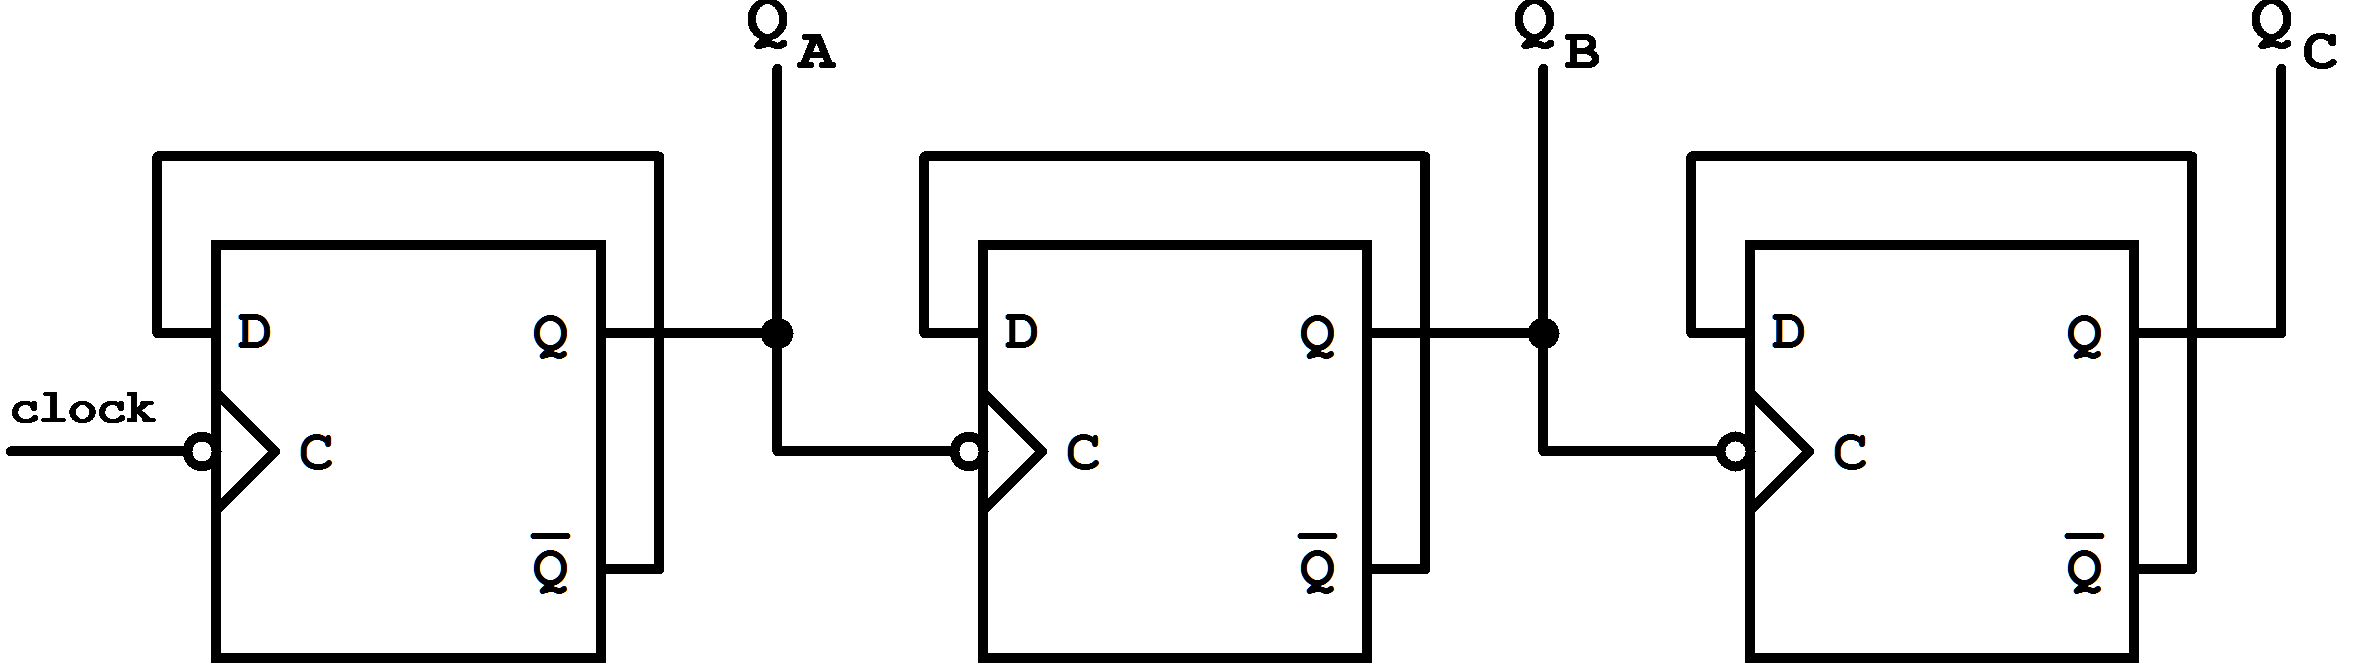 D Flip Flop Logic Diagram Wiring Library Gate Show State Transition Cheggcom